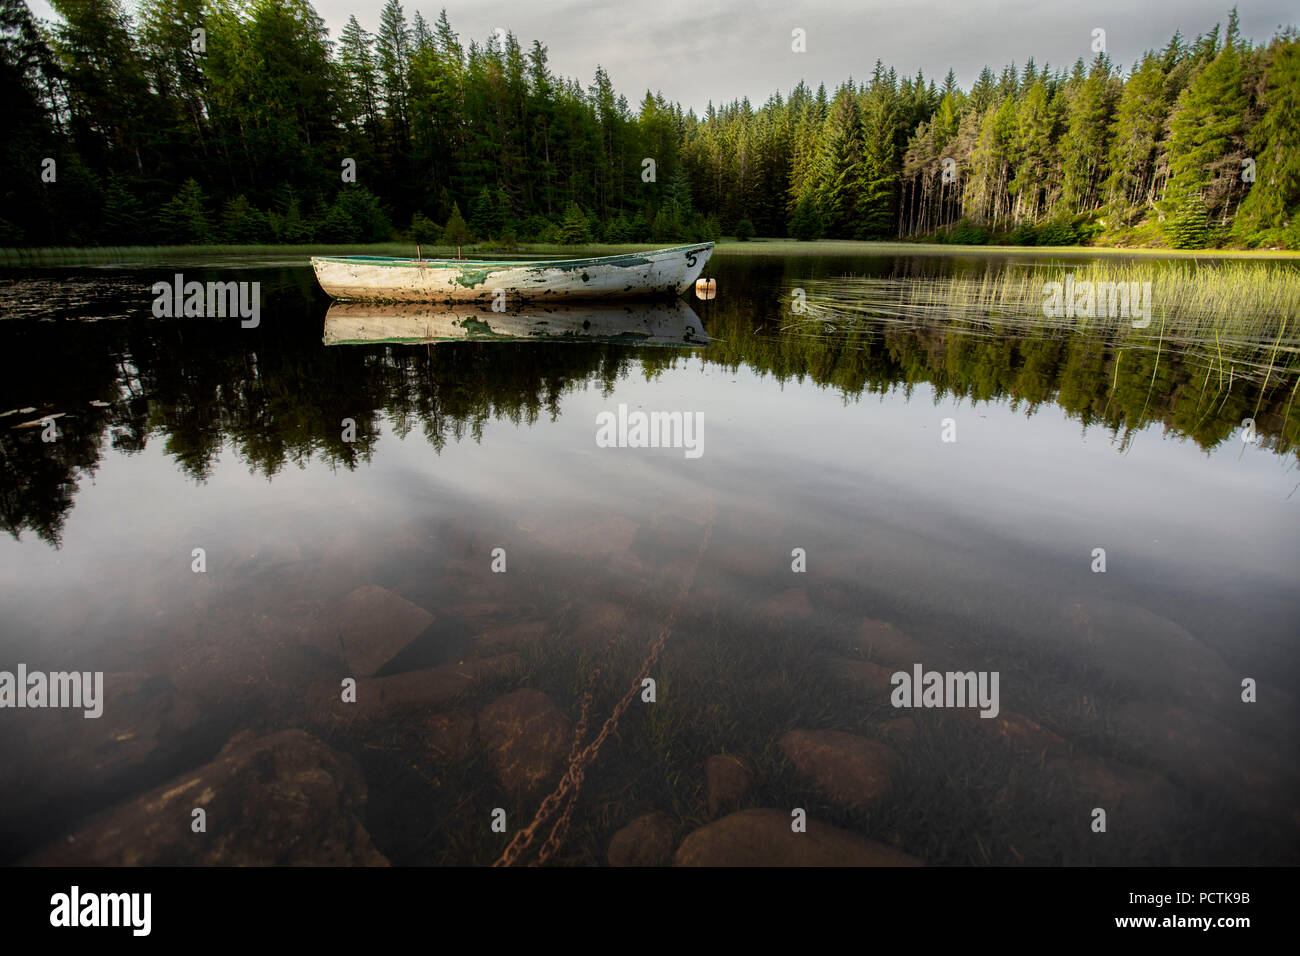 loch in scotland still water with small rowing fishing boat - Stock Image